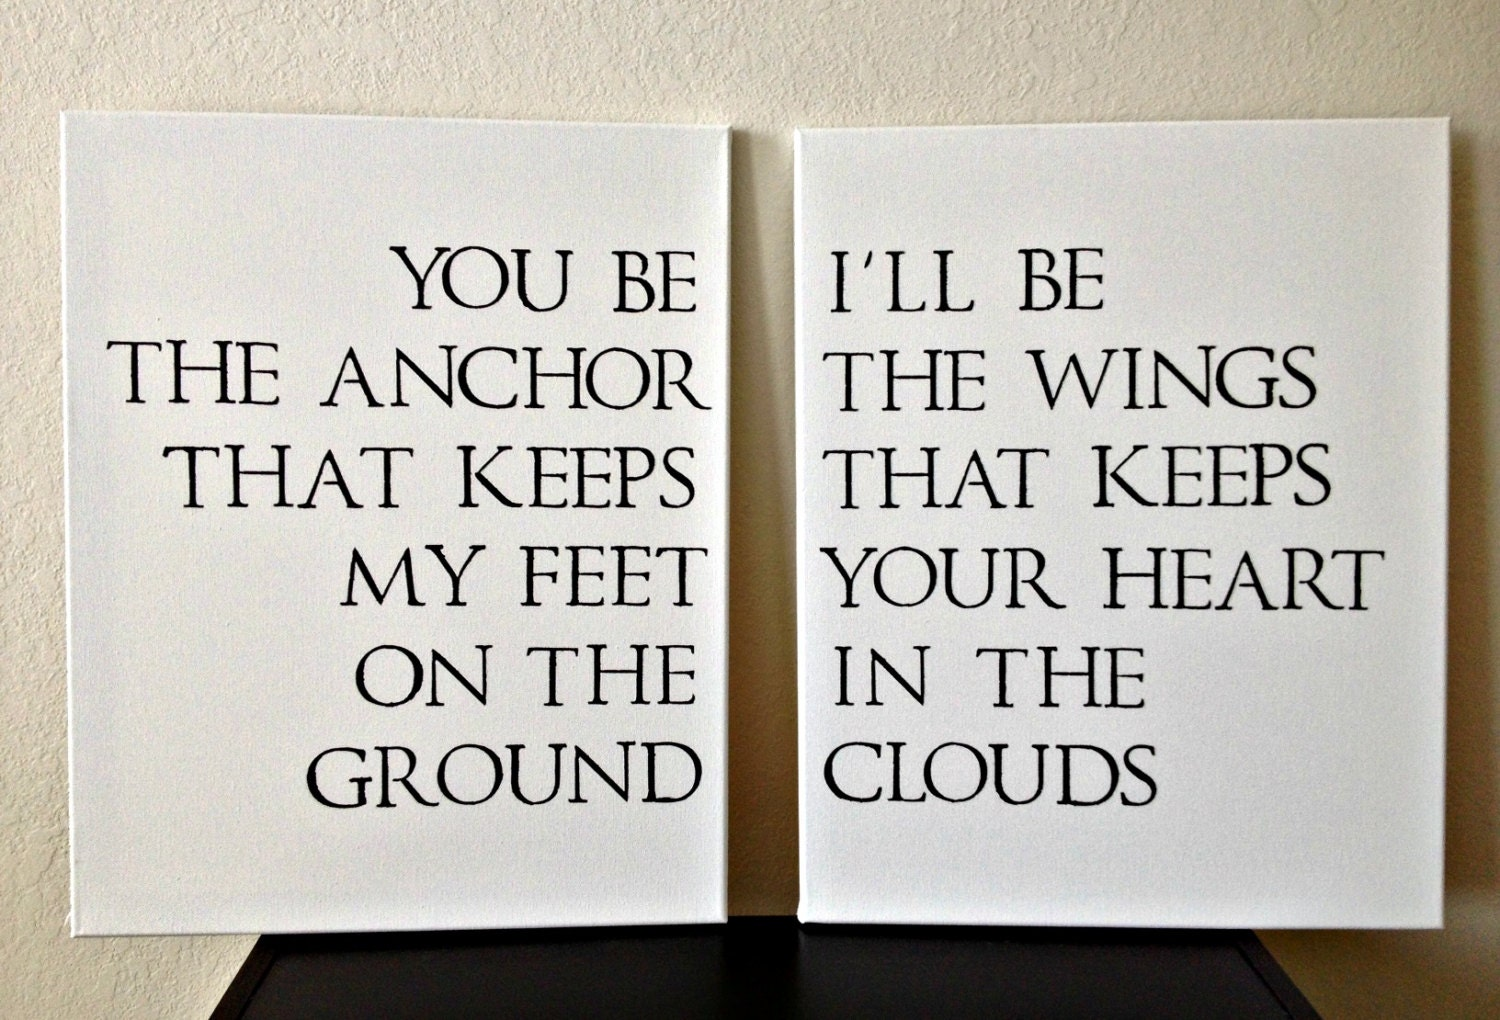 16x20inch Quote on Canvas - You Be The Anchor That Keeps My Feet On The Ground, I'll Be The Wings That Keeps Your Heart In The Clouds - DreamLoveBoutique